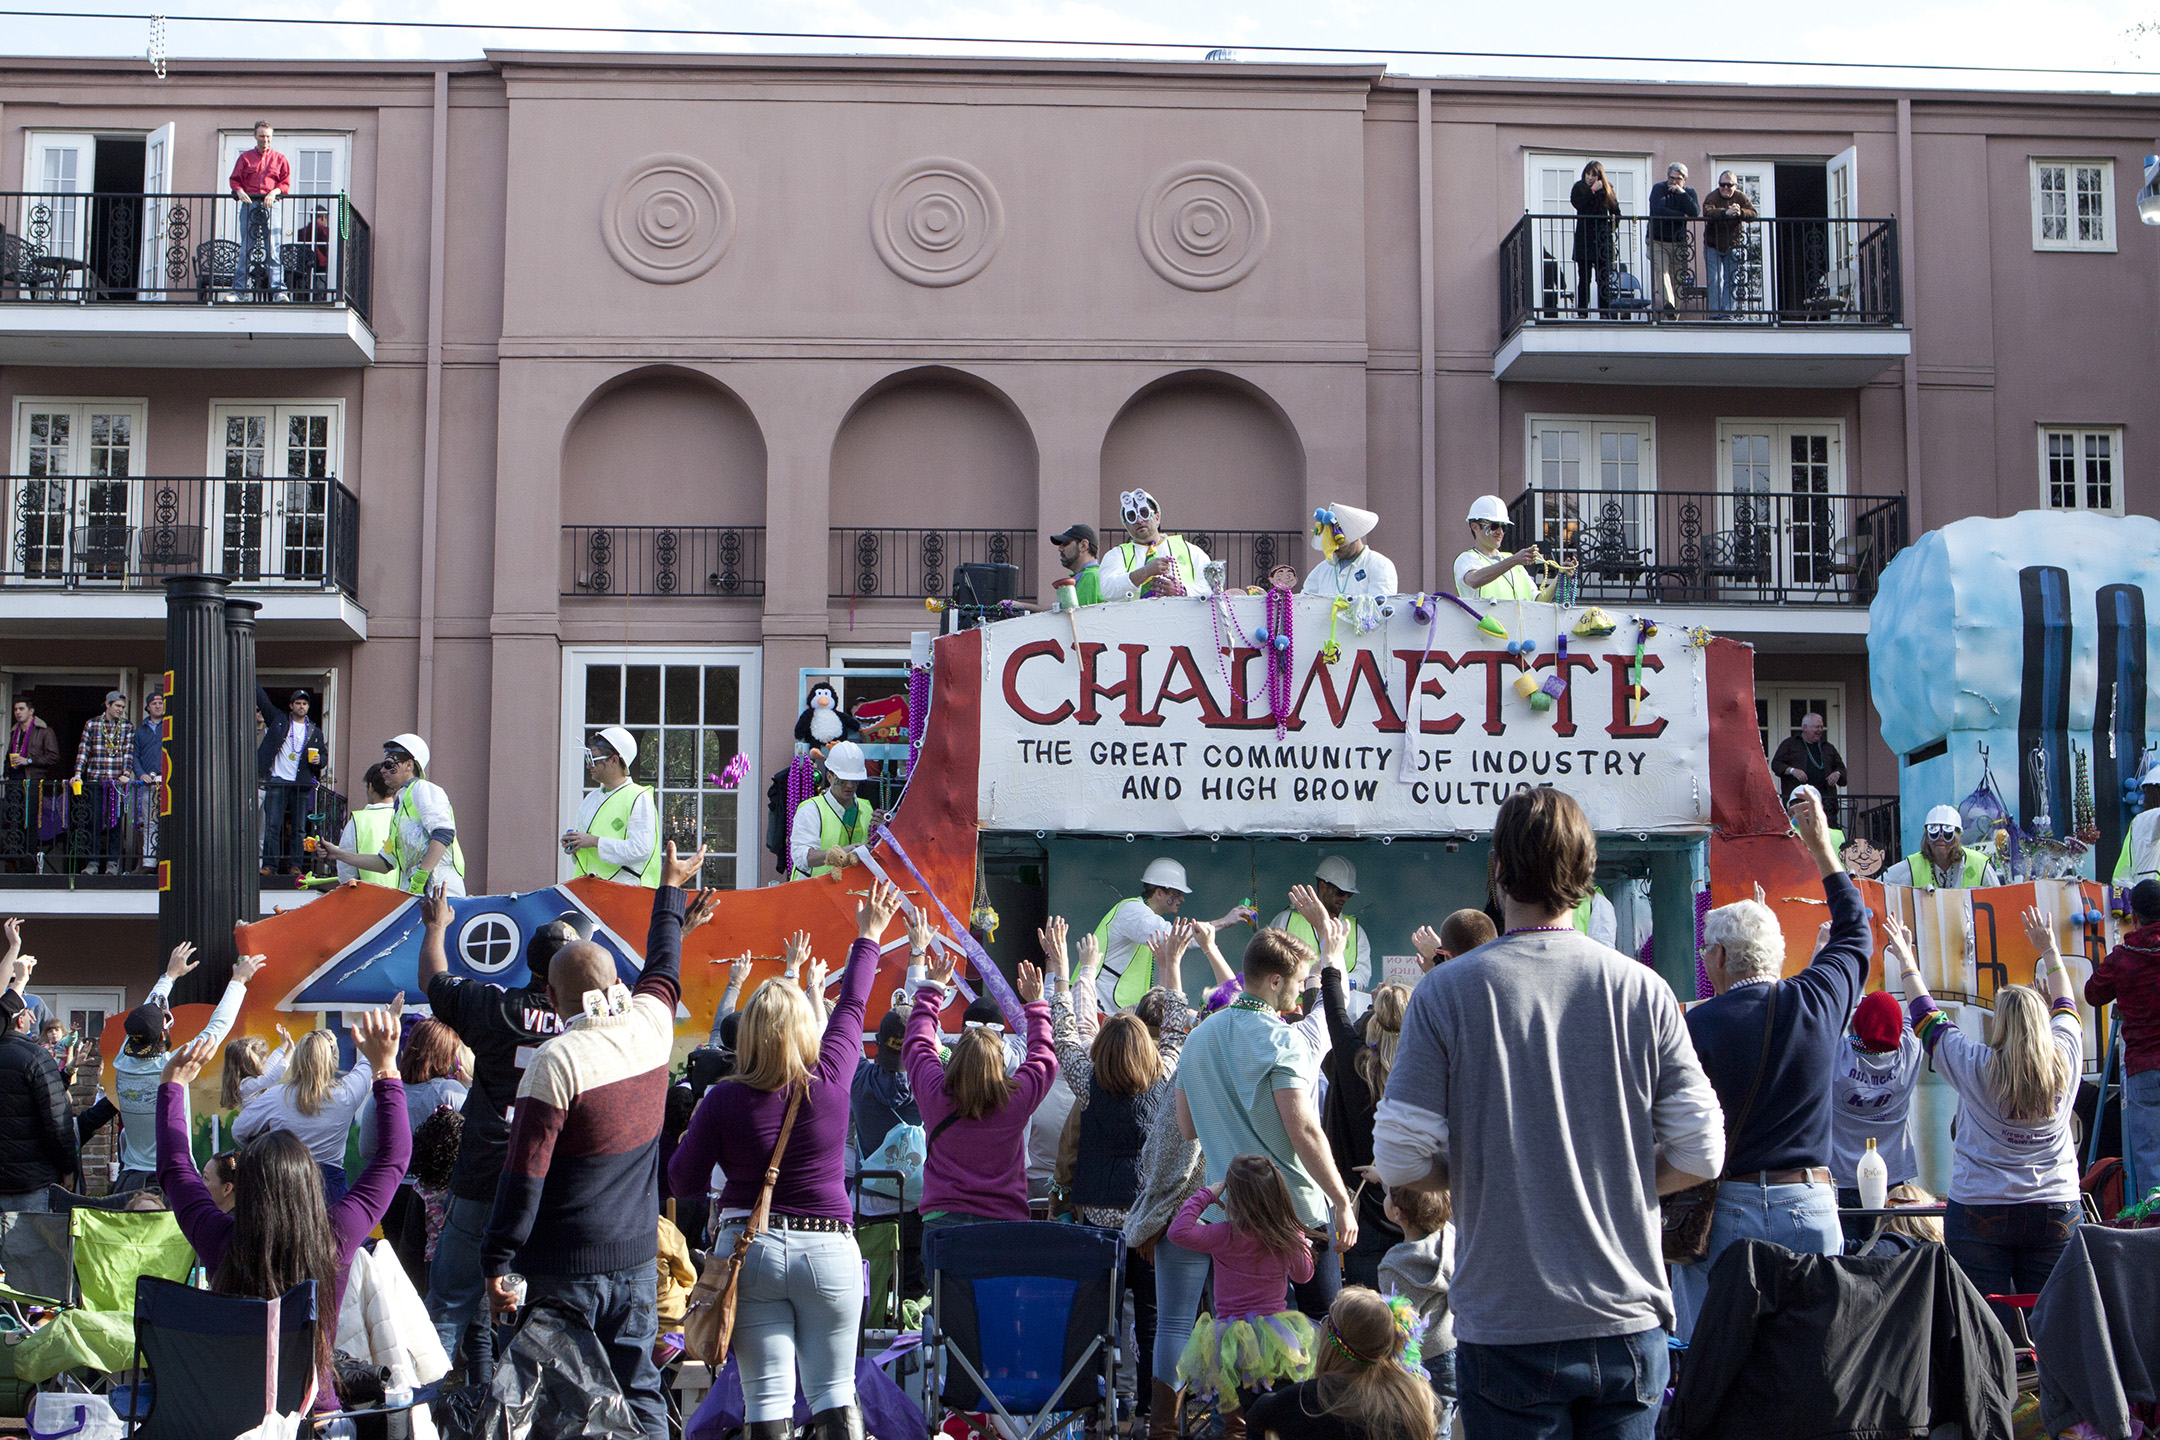 The Tucks Parade, led by its signature giant toilet float, is a day parade known for its use of playful commentary and satire.